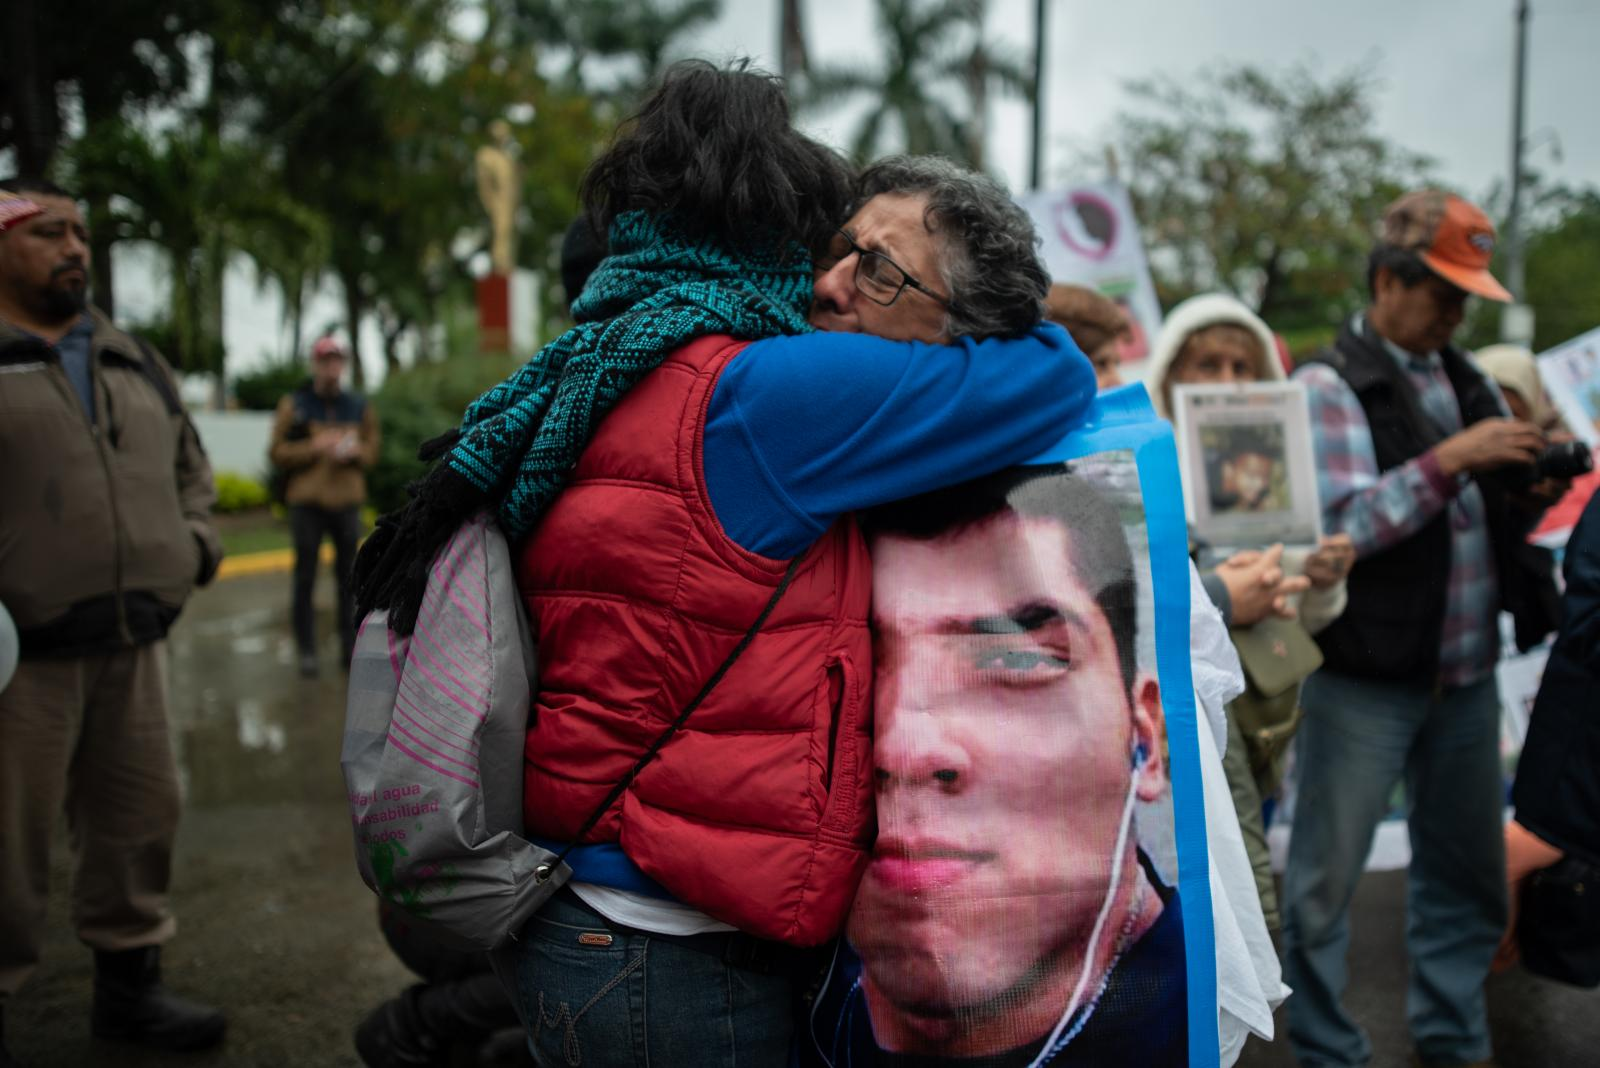 Two women cries during a demonstration of missing persons. Approximately 300 people participated in the fifth National Missing Persons Search Brigade in Poza Rica, Veracruz, Mexico, on February 21, 2020. Victoria Razo for NPR